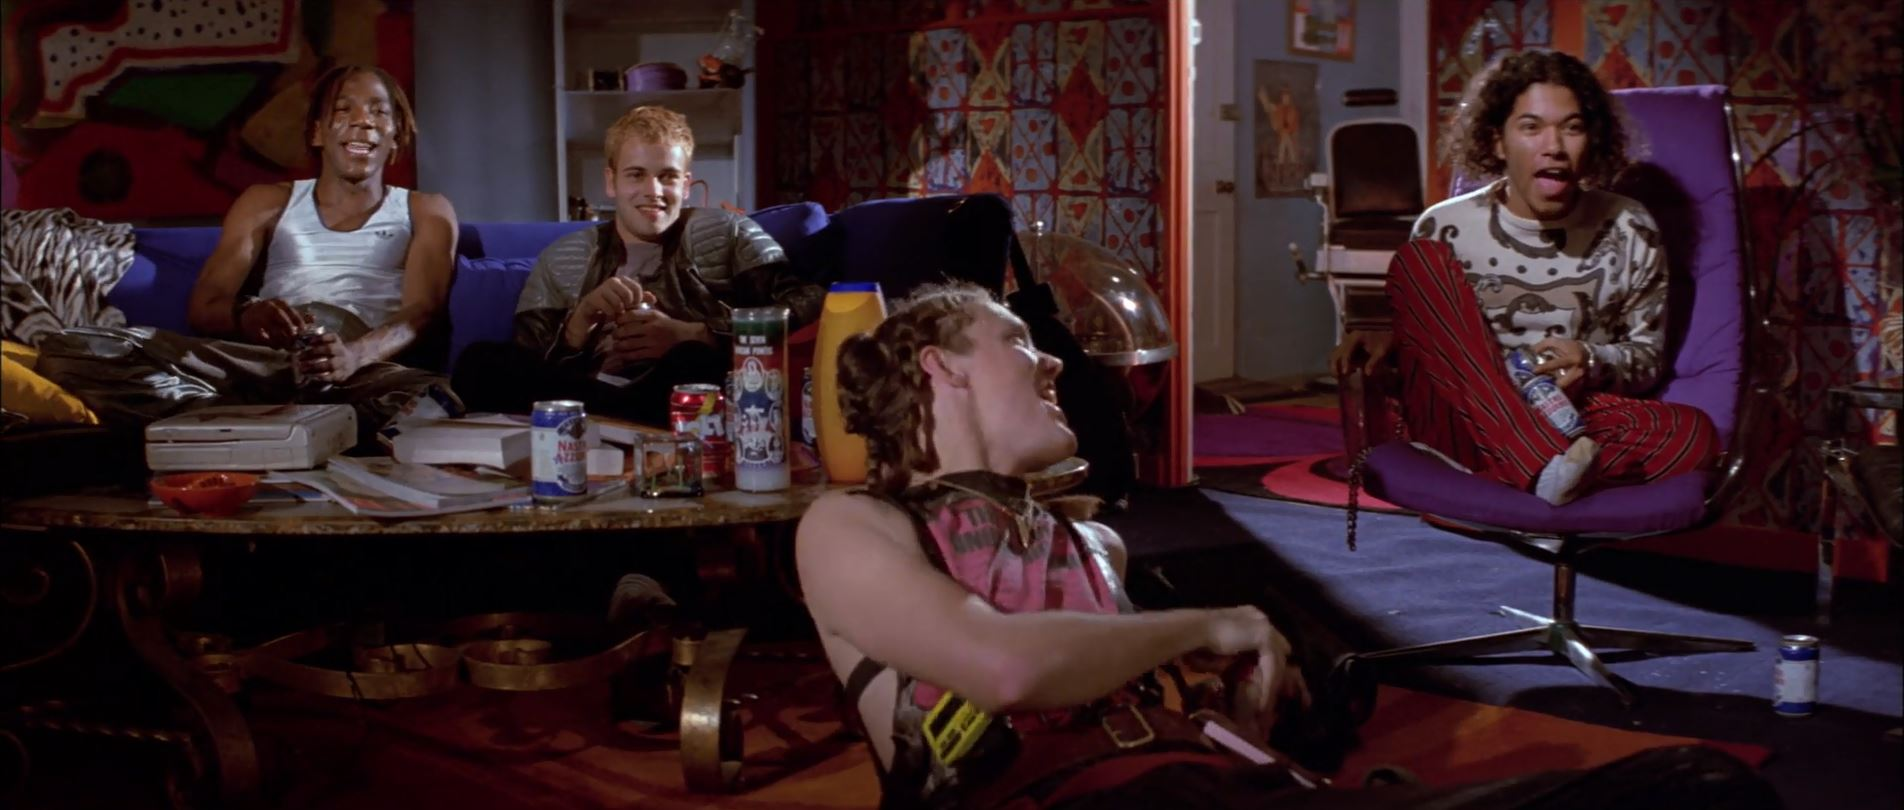 Hack the planet. Hackers 20th Anniversary Edition Blu-Ray Review